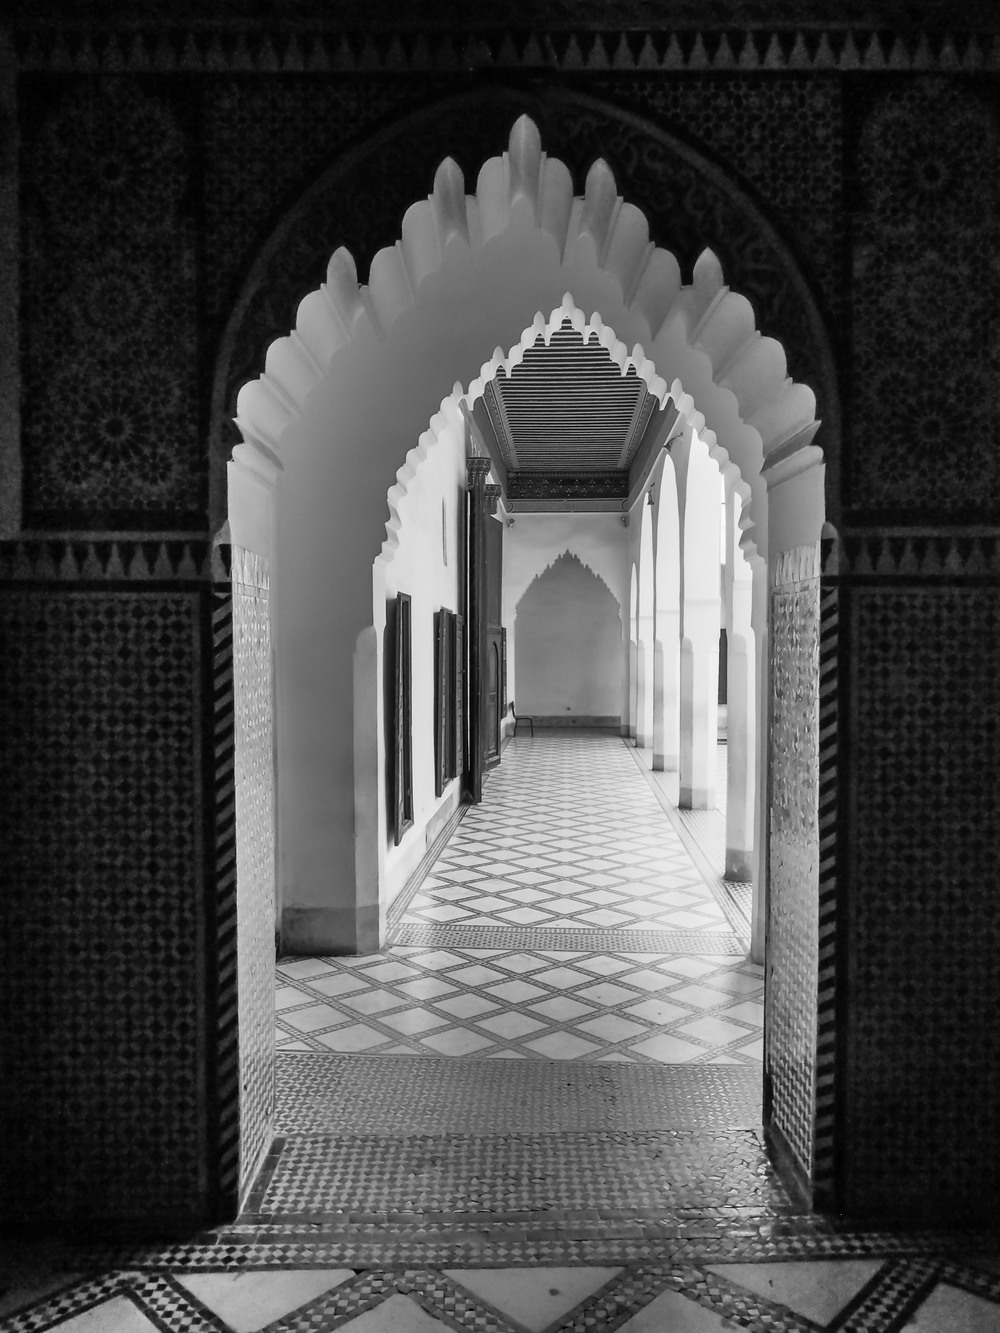 This is the interior of the Ben Youssef Madrasa, originally a college and then a sultan's palace, now a restored historic site.